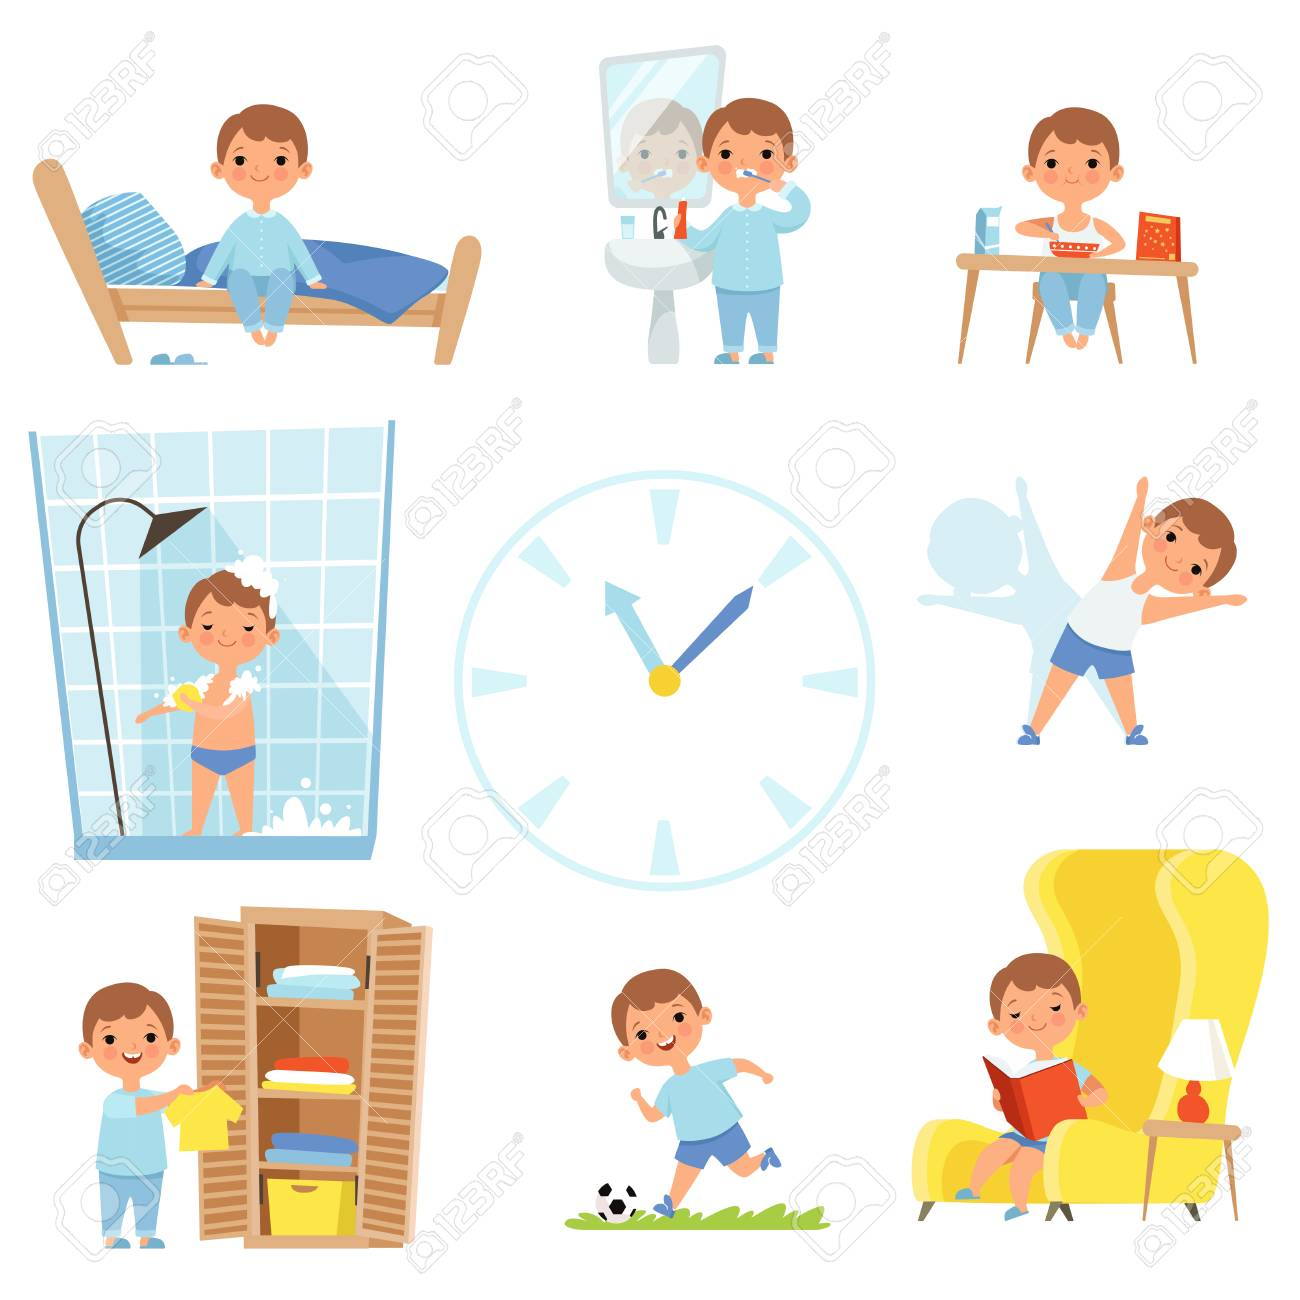 Daily routine. Kids making various cases in all day. Vector child daily sleep, eat and activity illustration - 105139037